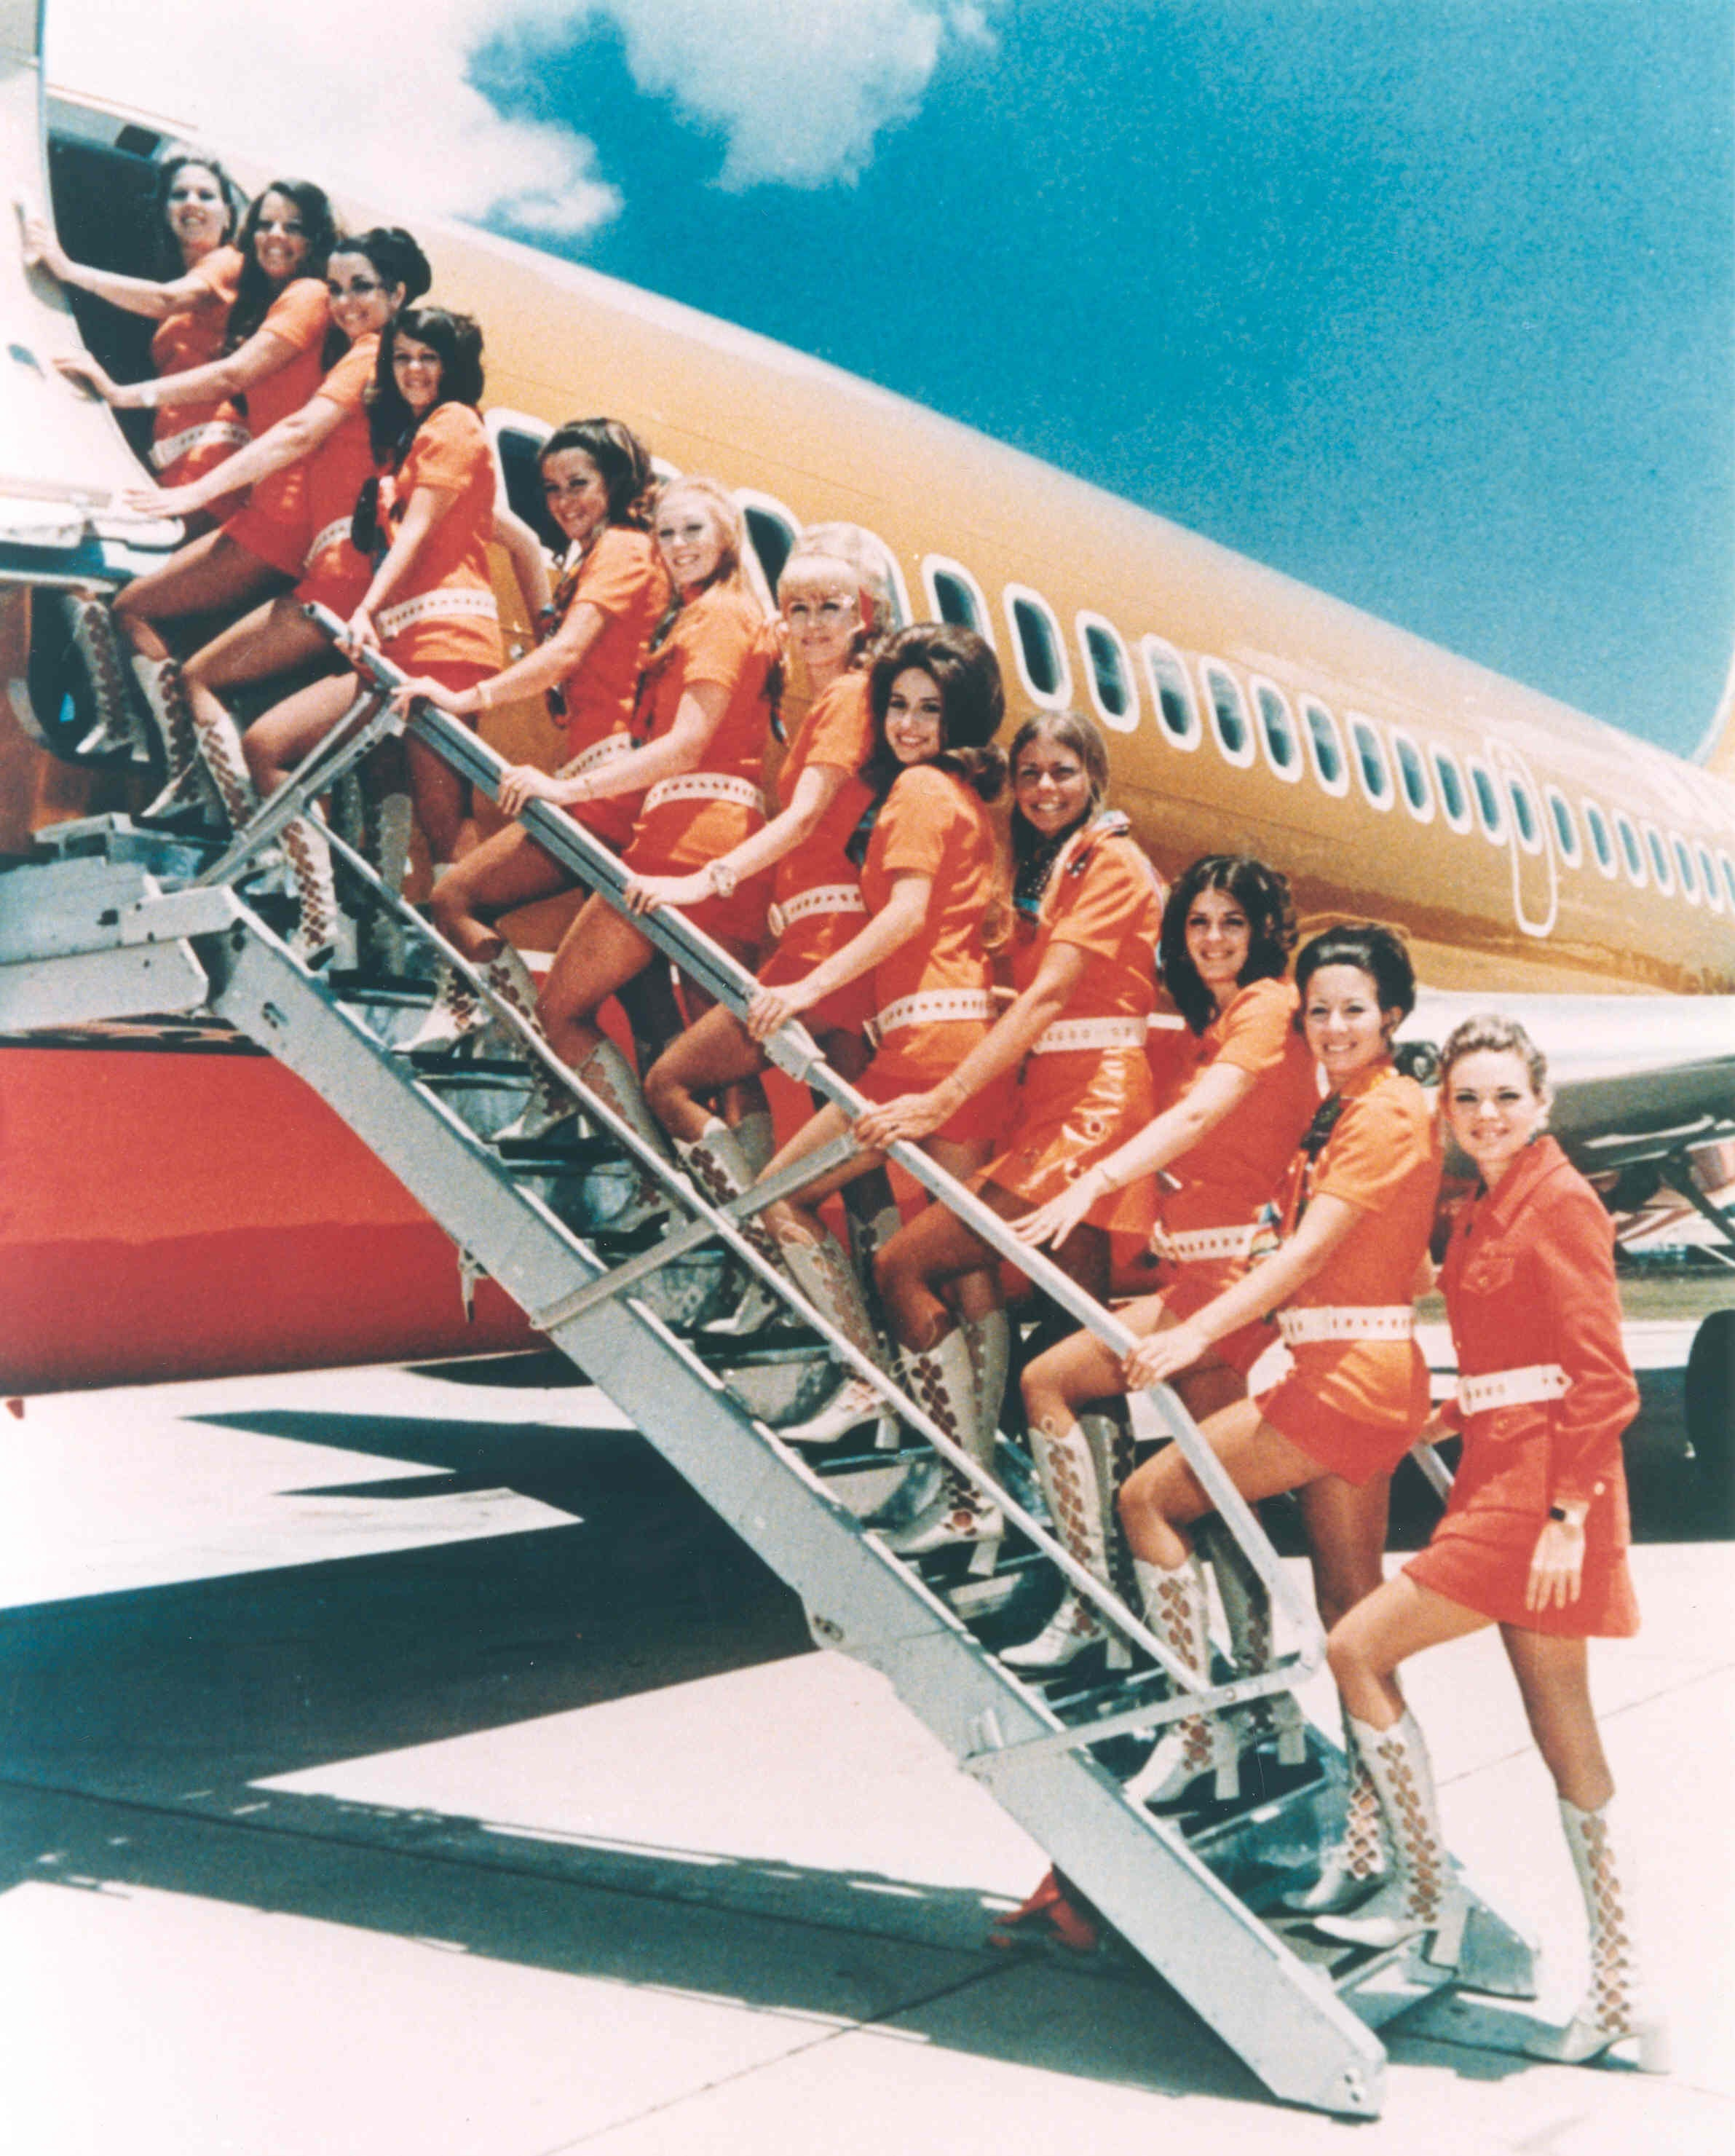 Slide 1 of 17: When Southwest started in 1971, it flew just two routes:Dallas-San Antonio and Dallas-Houston. That's not the only thing that was different back then: The flight attendants wore hot pants and go-go boots. Click ahead for more photos from the airline's history.